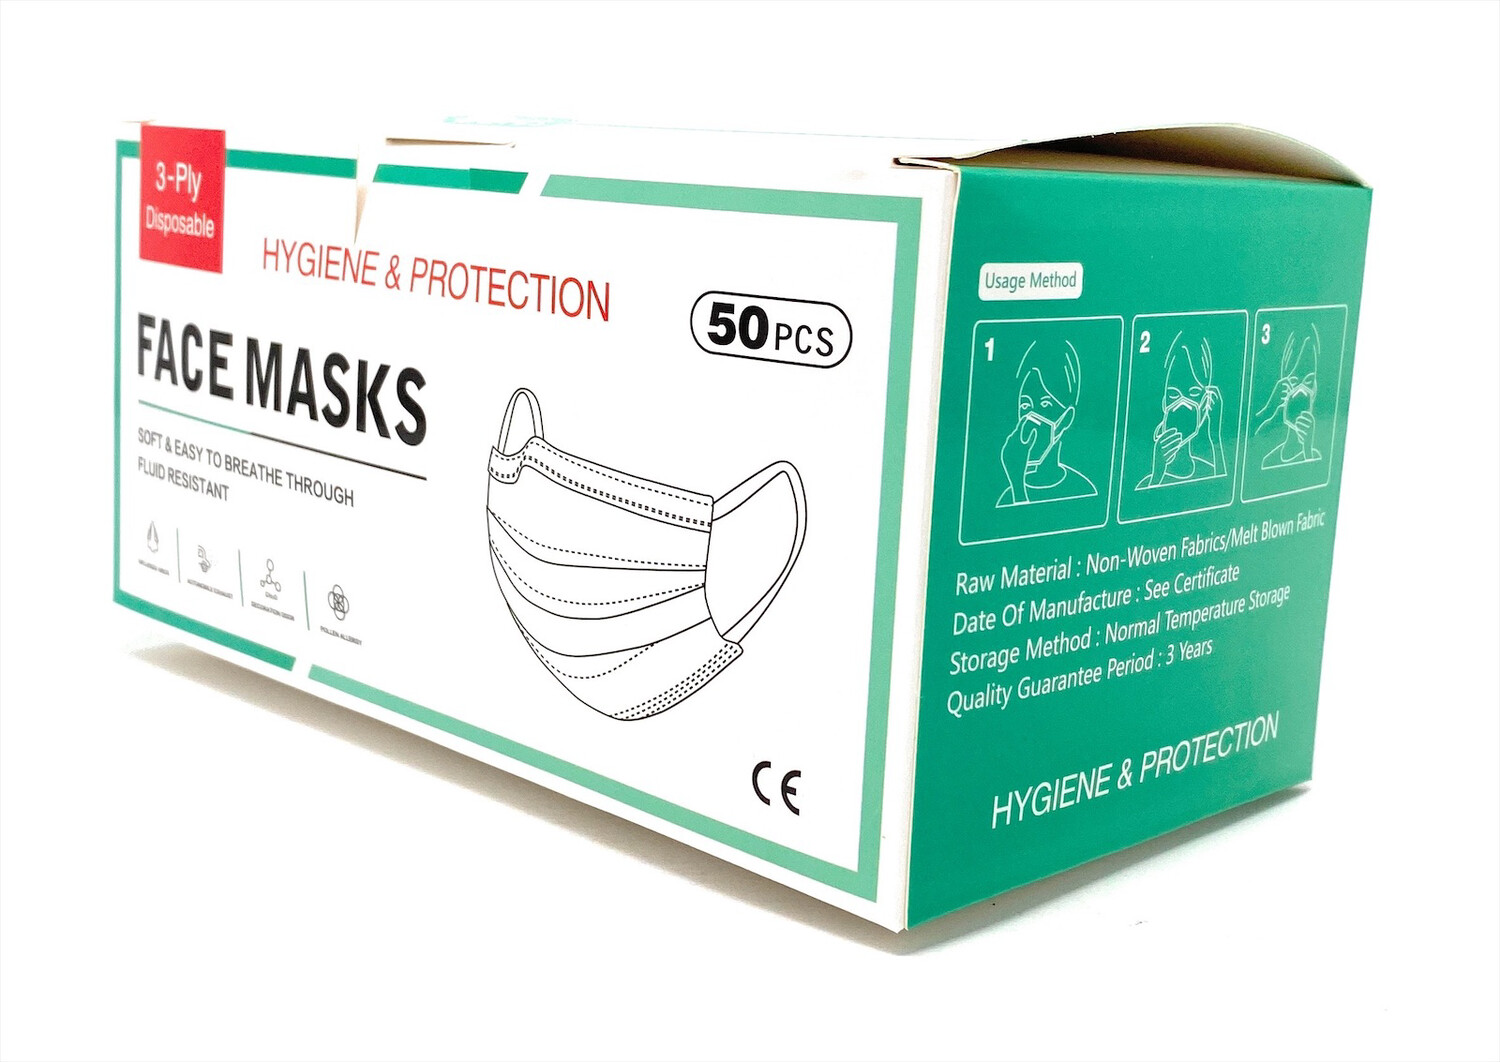 Face Mask 3 -ply Disposable 50 Pcs Box